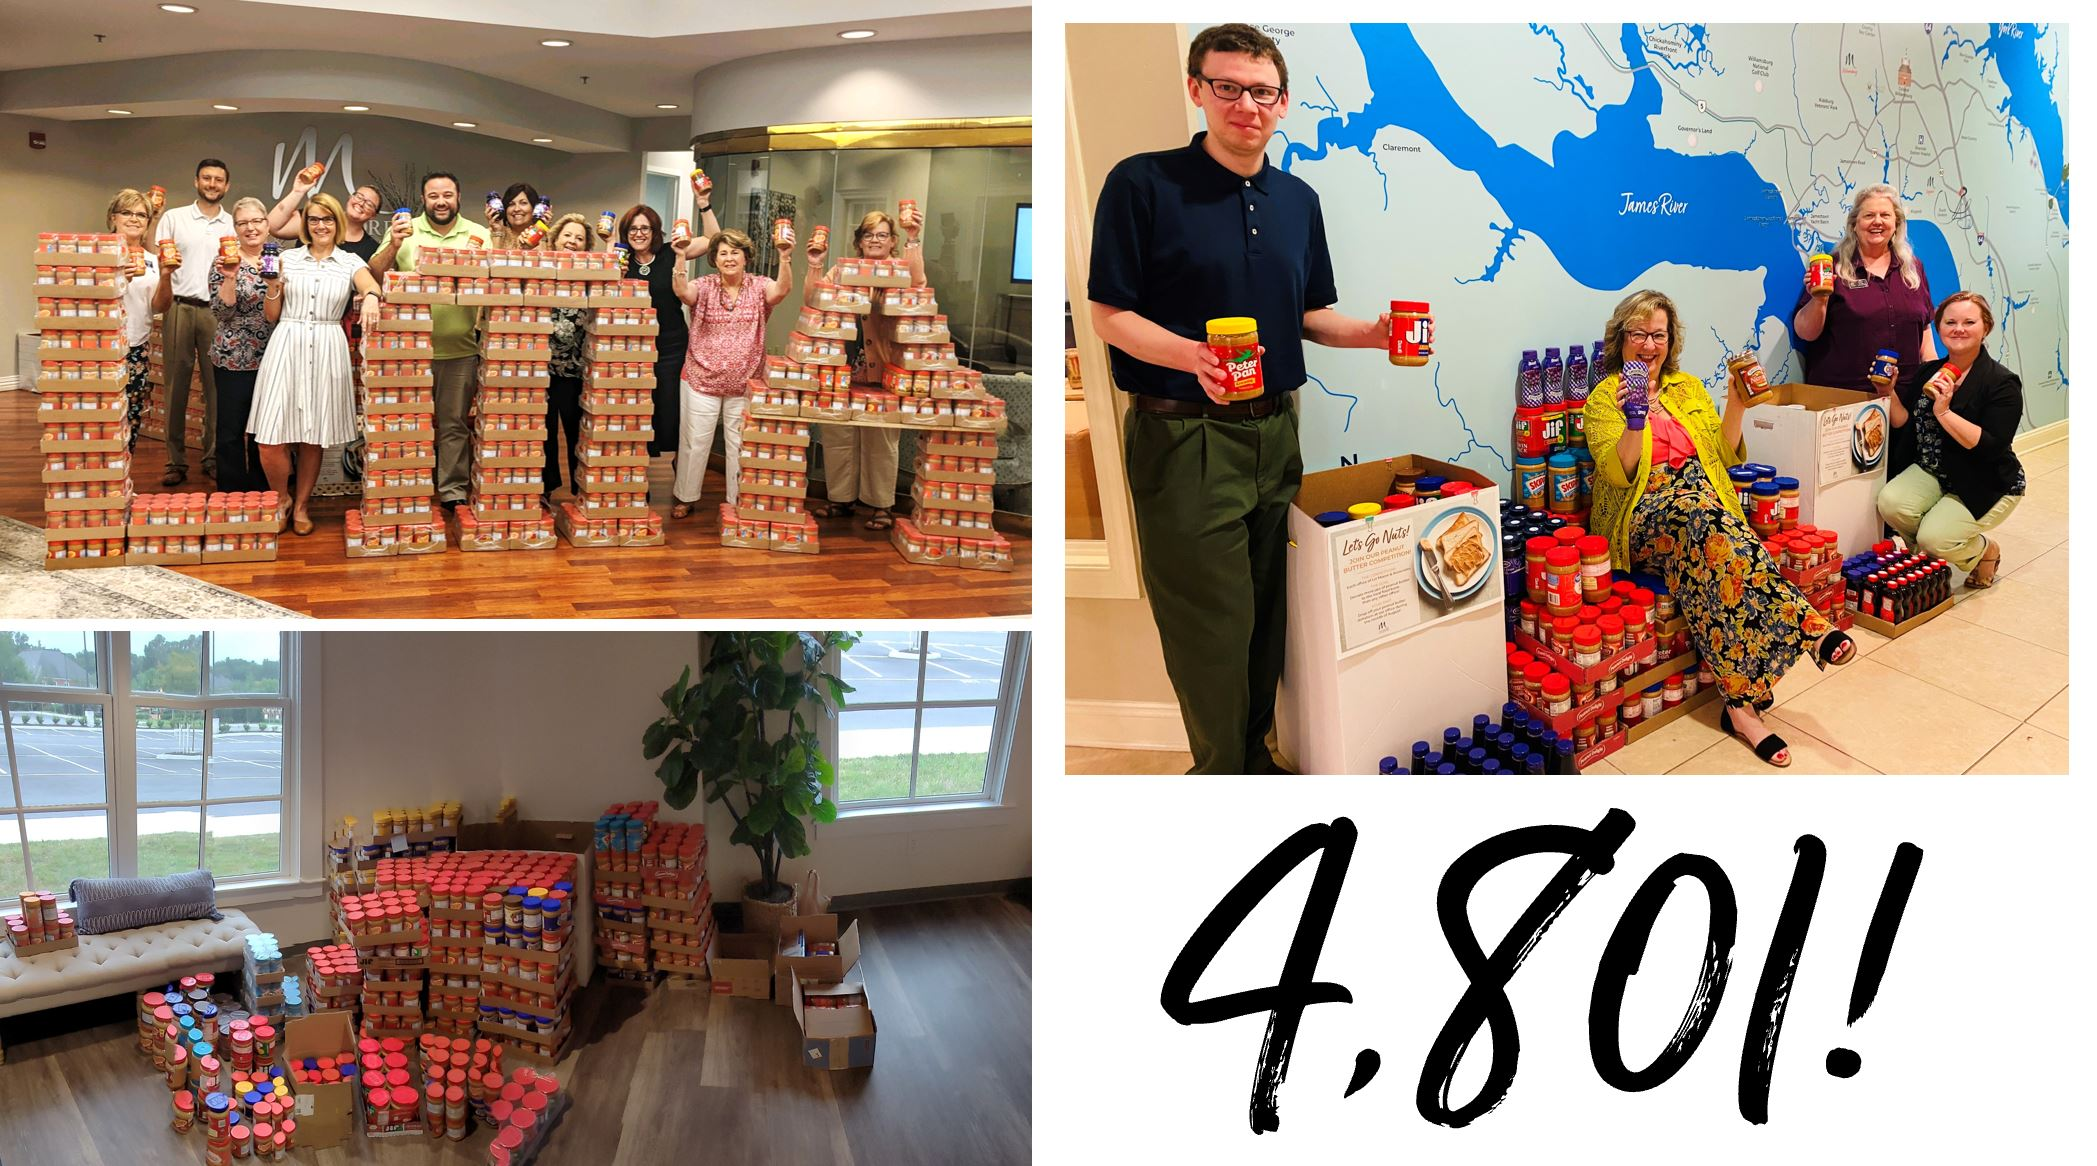 4,801 Jars of Peanut Butter Collected for Local Food Banks